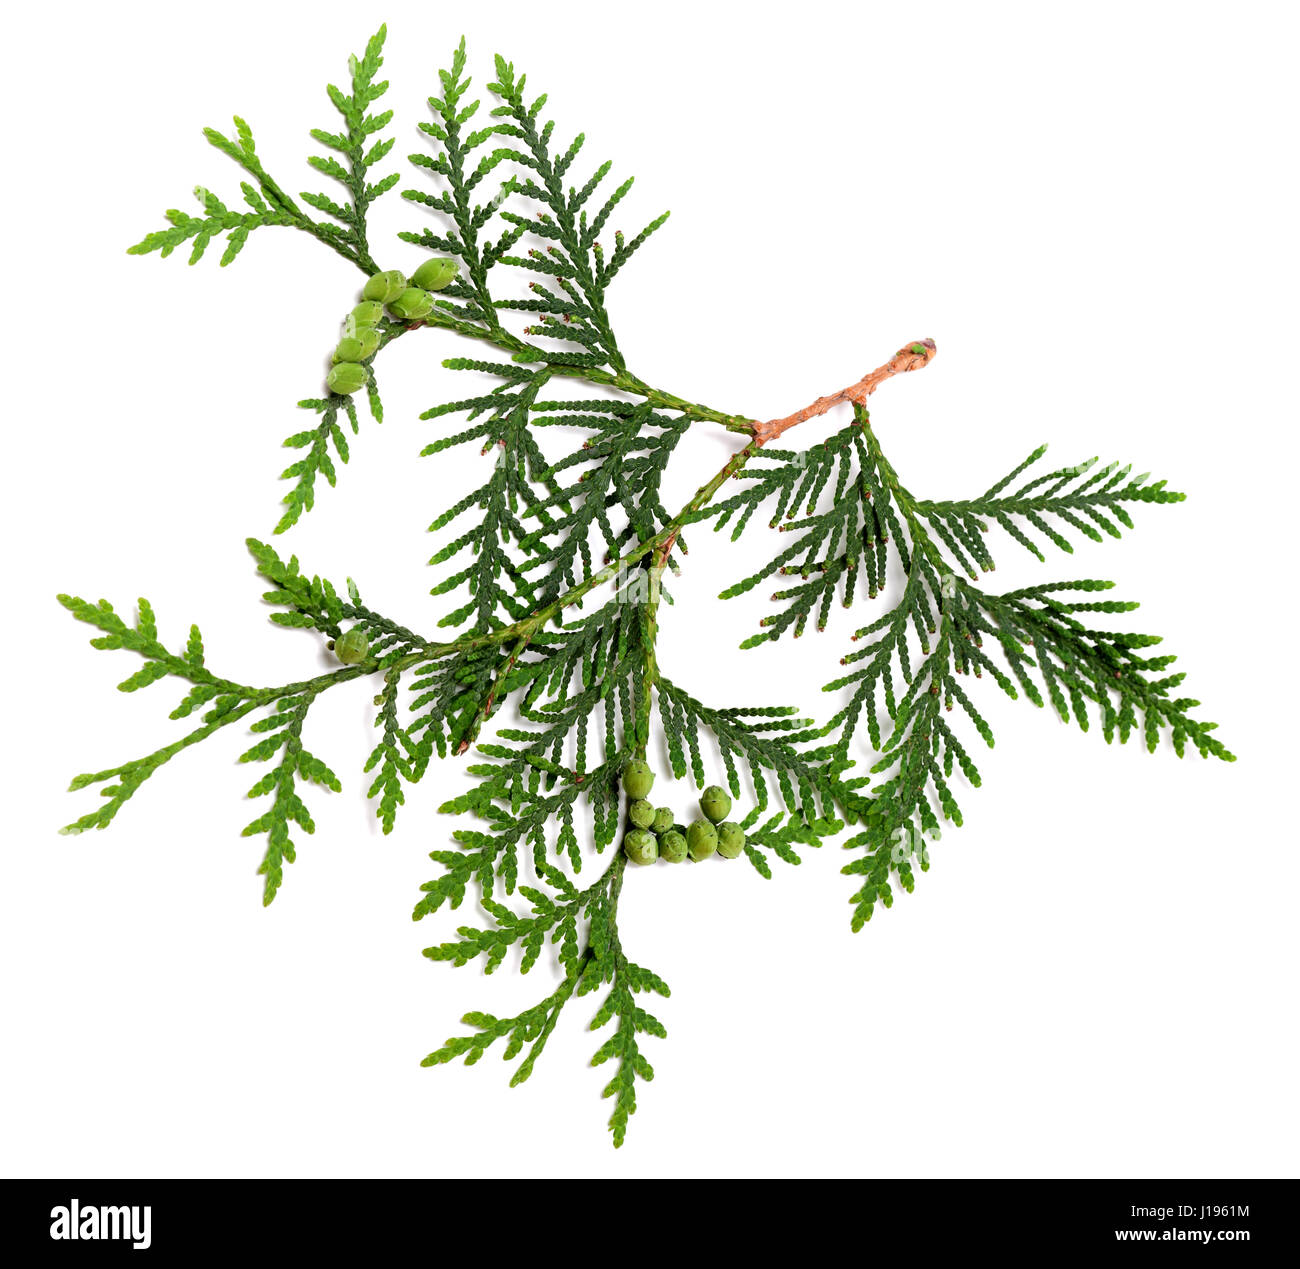 Twig of thuja with green cones isolated on white background. Top view. - Stock Image